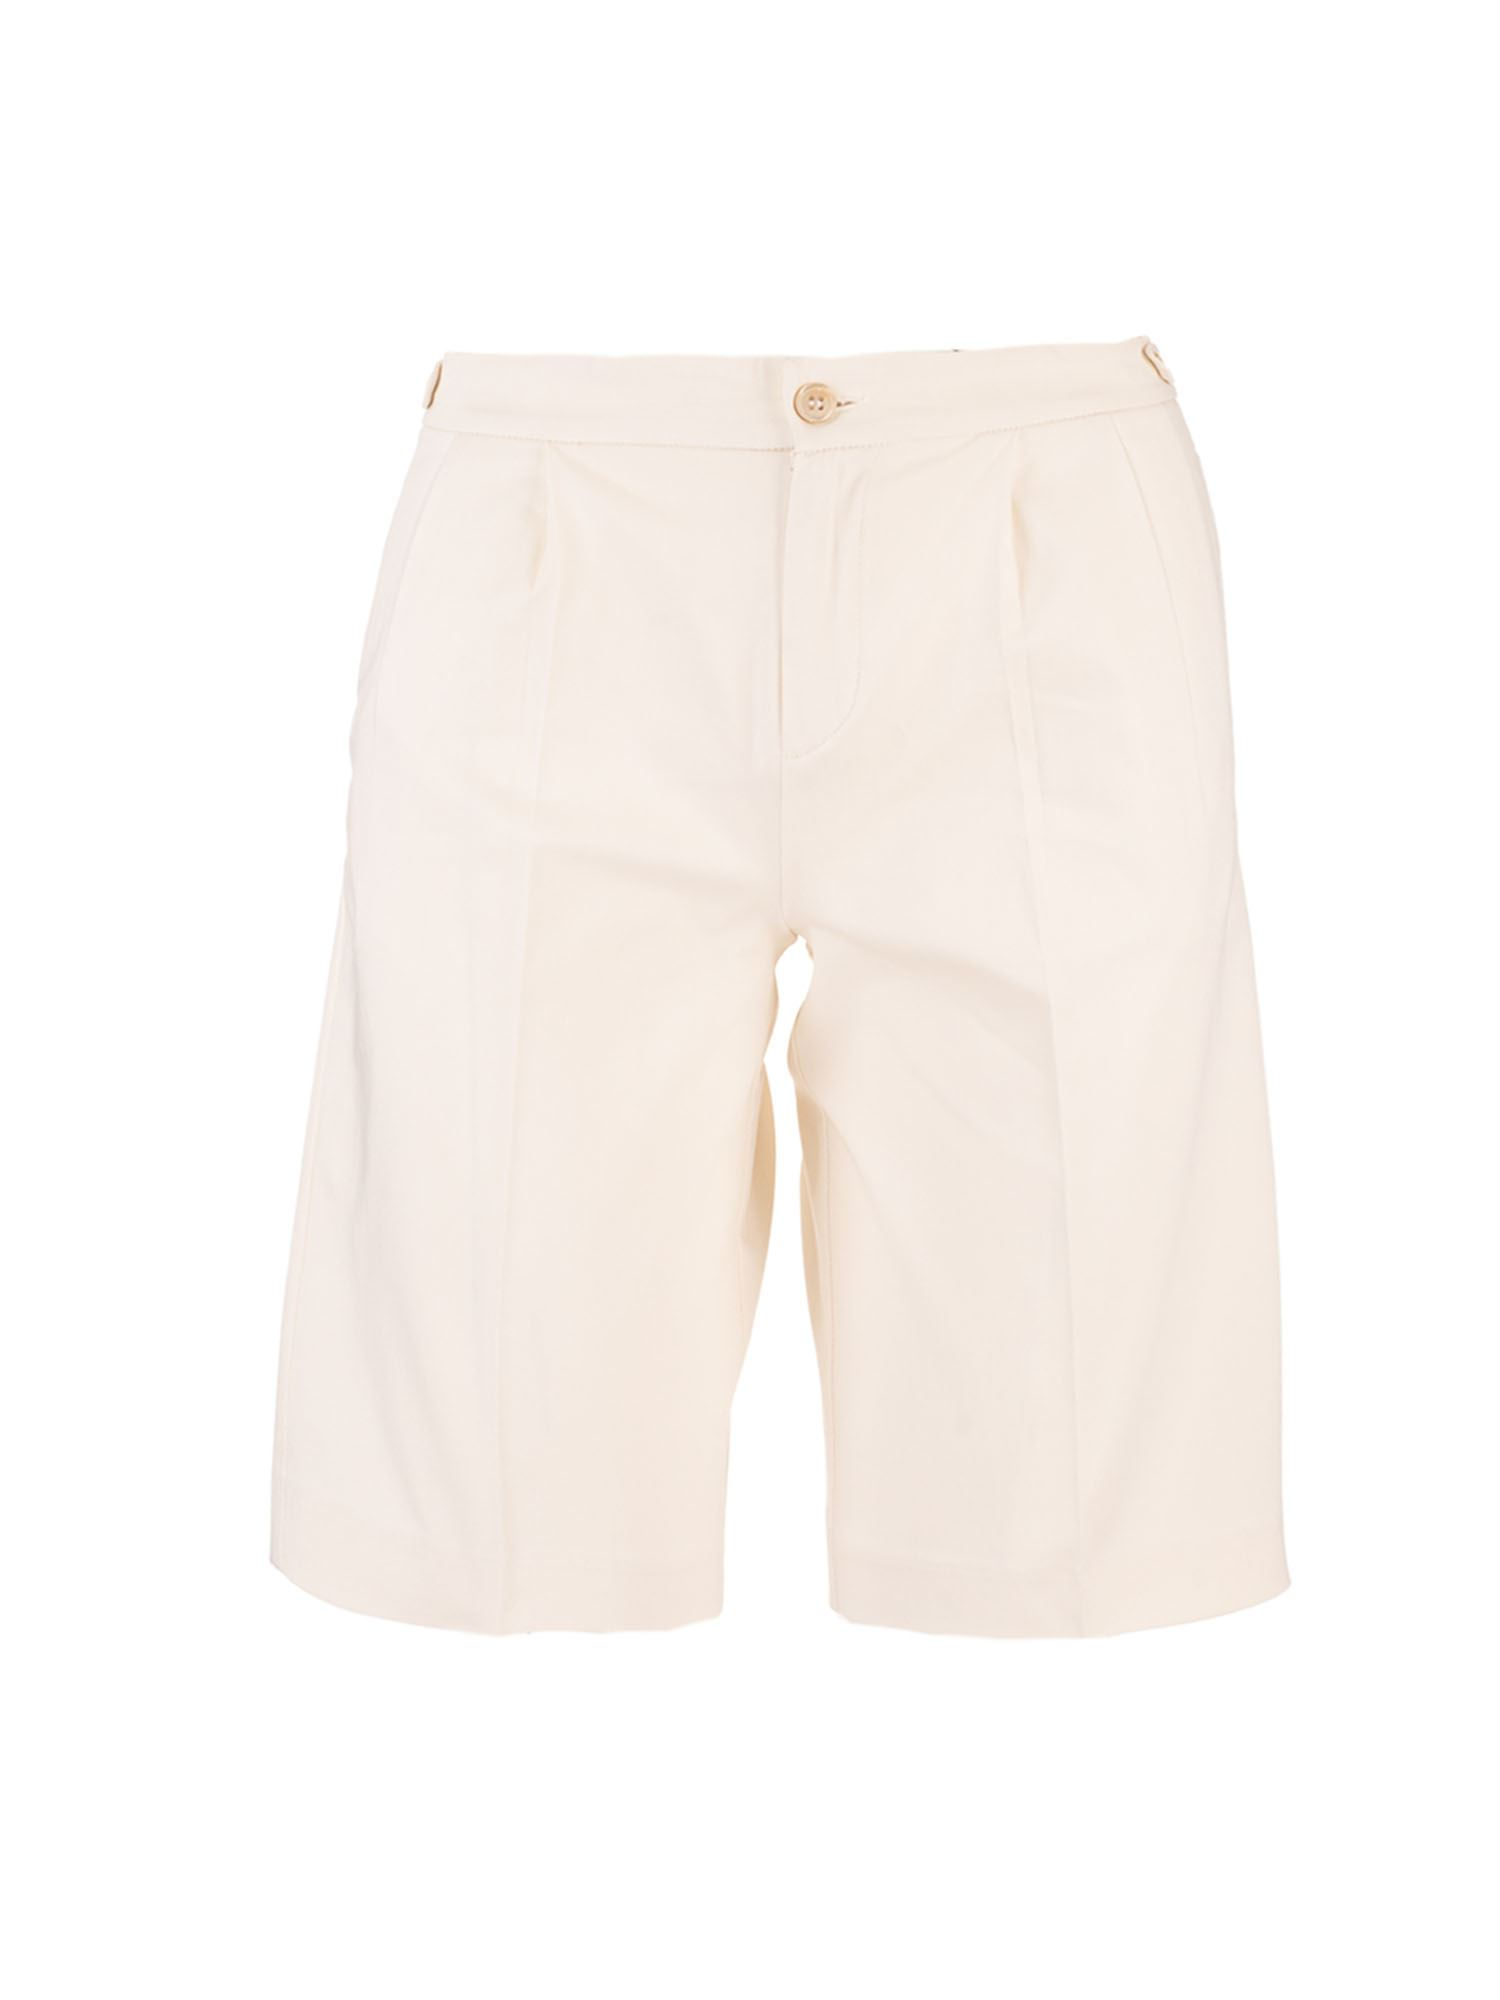 Gucci CAT LOGO SHORTS IN WHITE